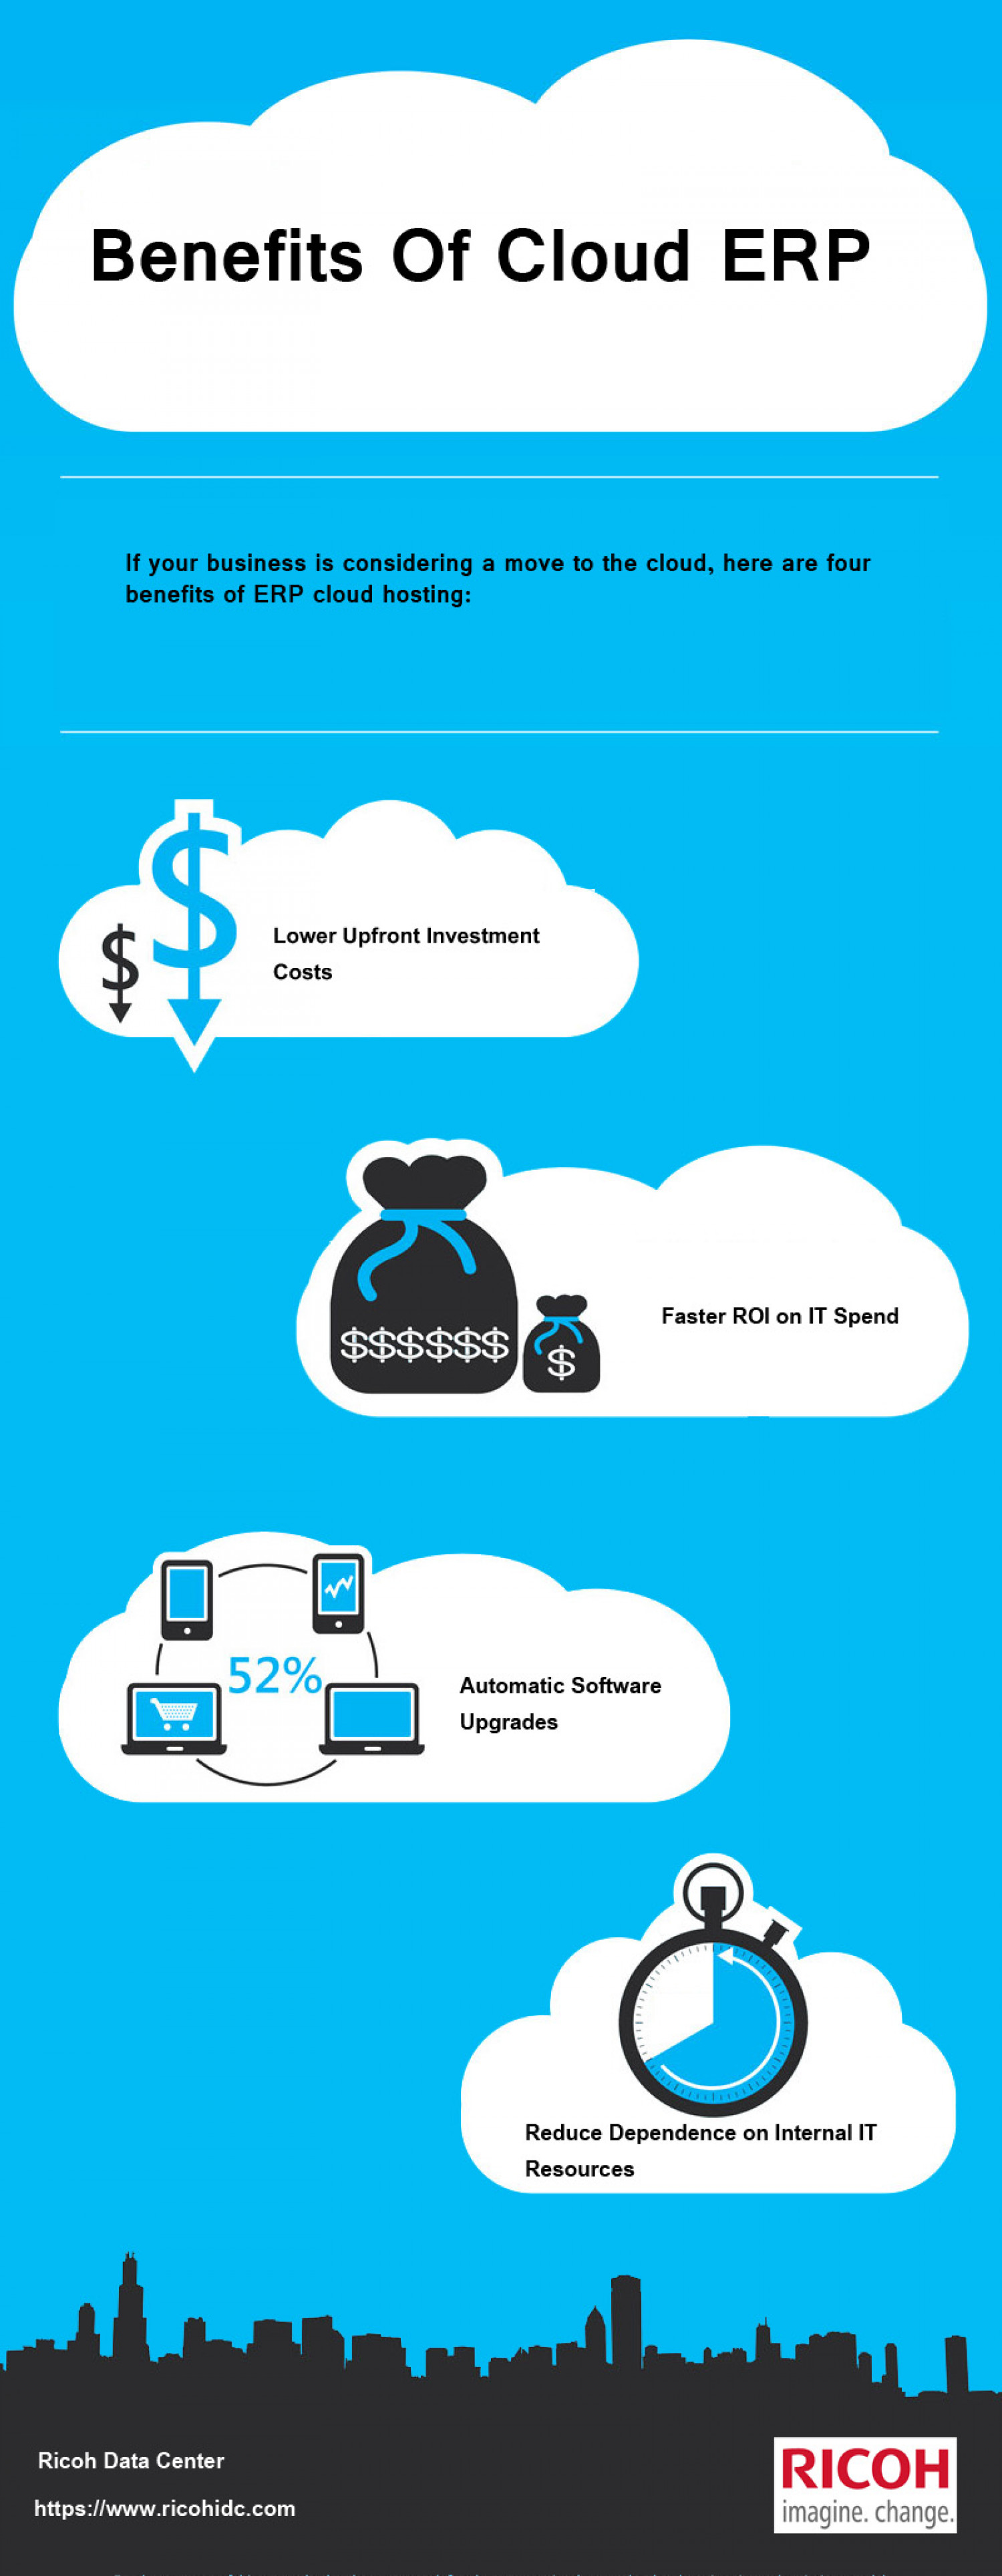 Benefits of Cloud ERP Hosting Infographic